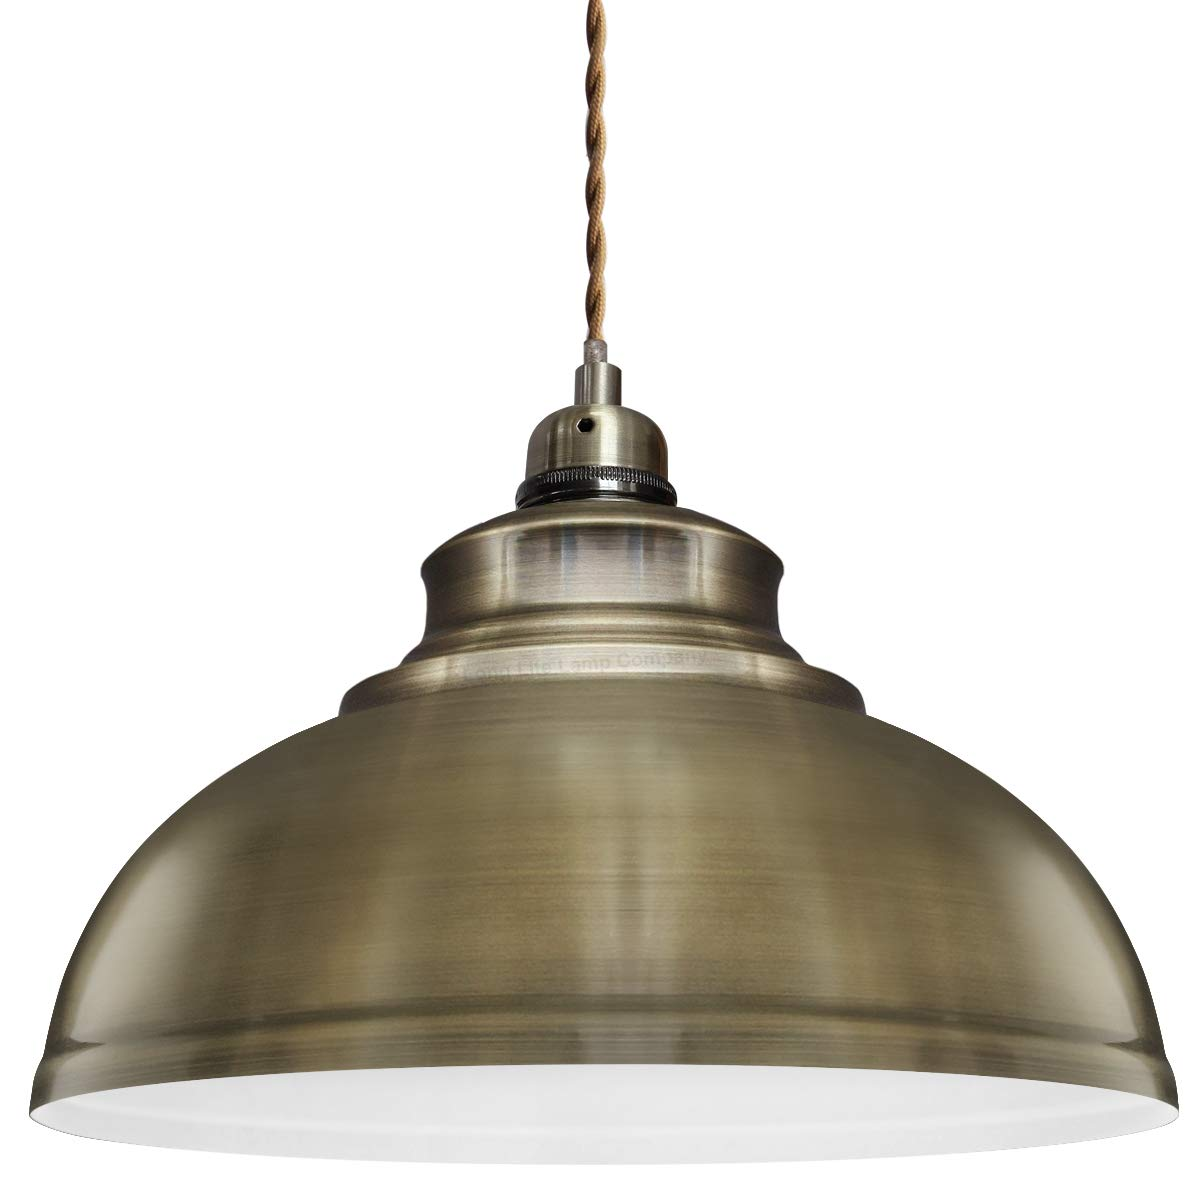 new arrival 6592b 311a1 Modern Vintage Antique Brass Pendant Light Shade Industrial Hanging Ceiling  Light Ideal For Dining Room Bar Clubs & Restaurants